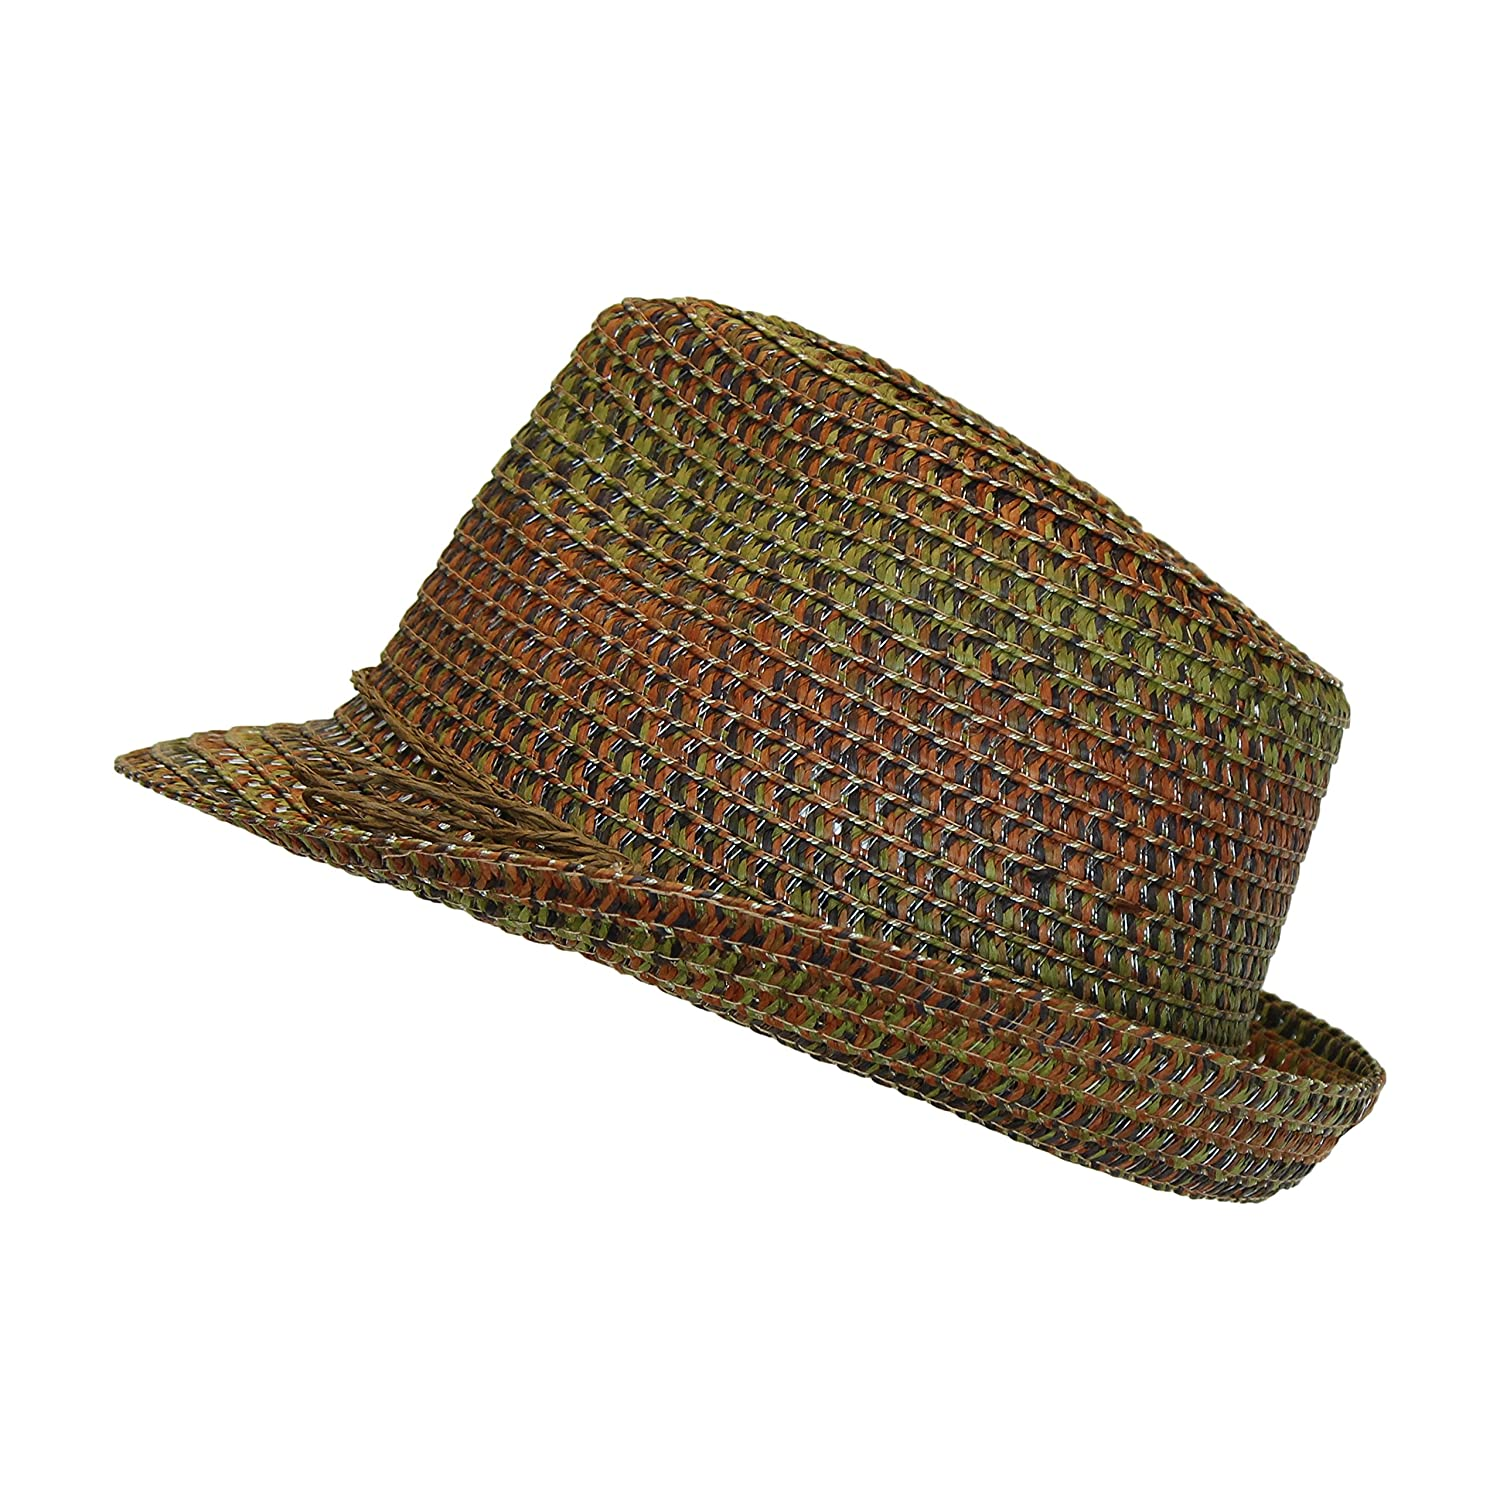 df000172a Boho Festival Straw Fedora Sun Hat in Olive, Brown and Rust Earth Tones,  One Size